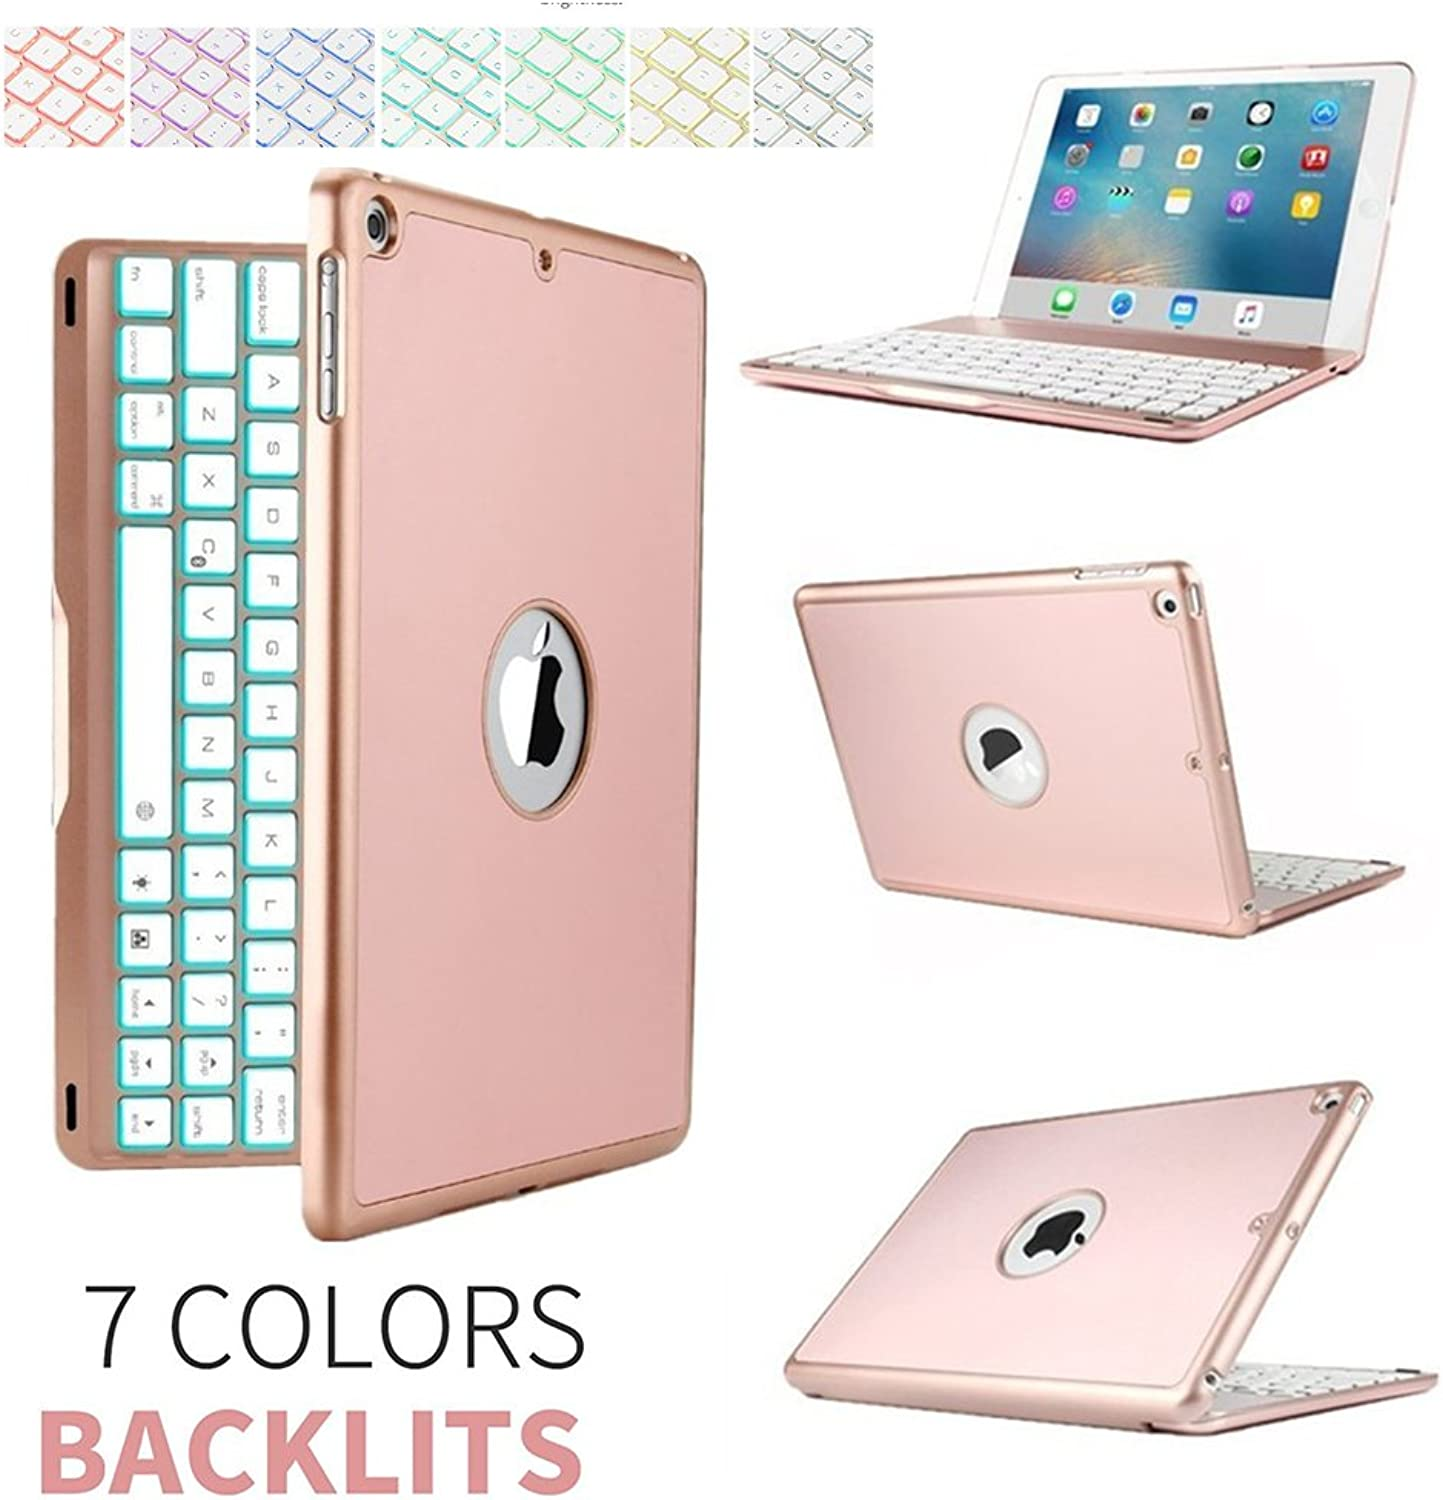 2017 New iPad keyboard case,elecfan 7 color Folio Backlit Light colorful blueetooth Keyboard Case With Executive Multi Function Case for 2017 Apple New iPad 9.7 inch (2017 New iPad, pink gold)